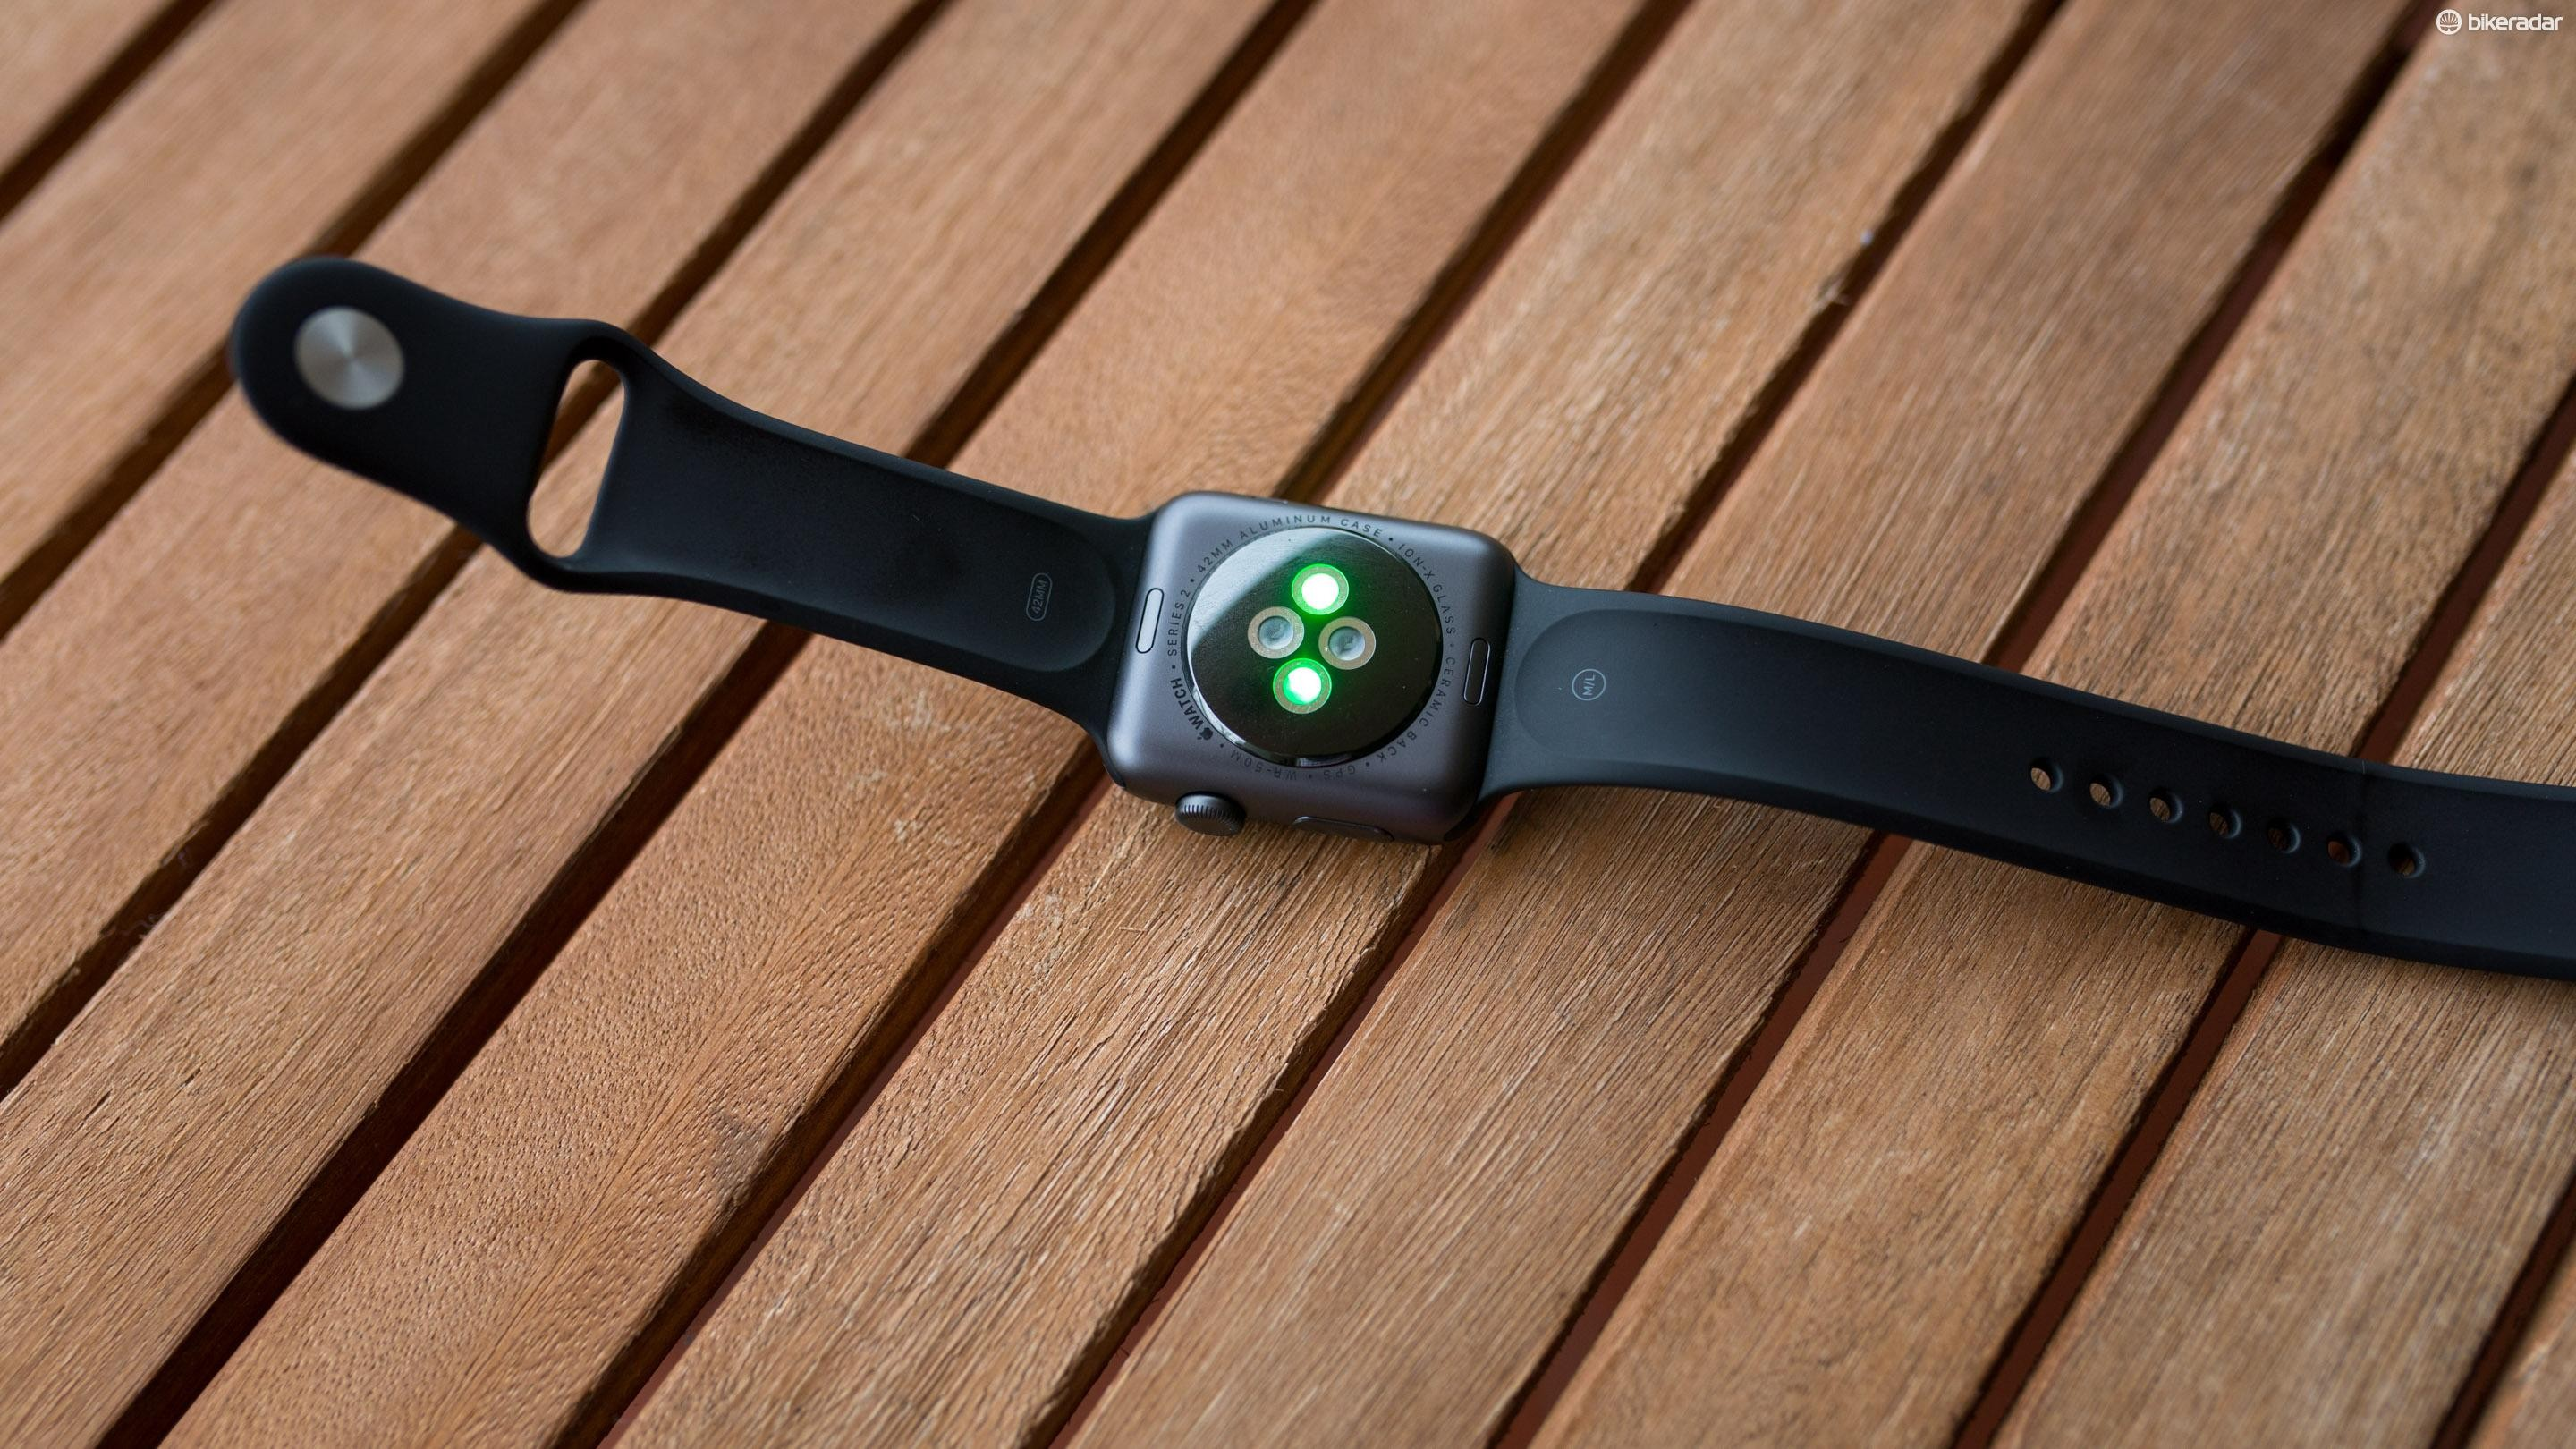 The Series 2 Watch gets the same two-LED sensor as the previous version